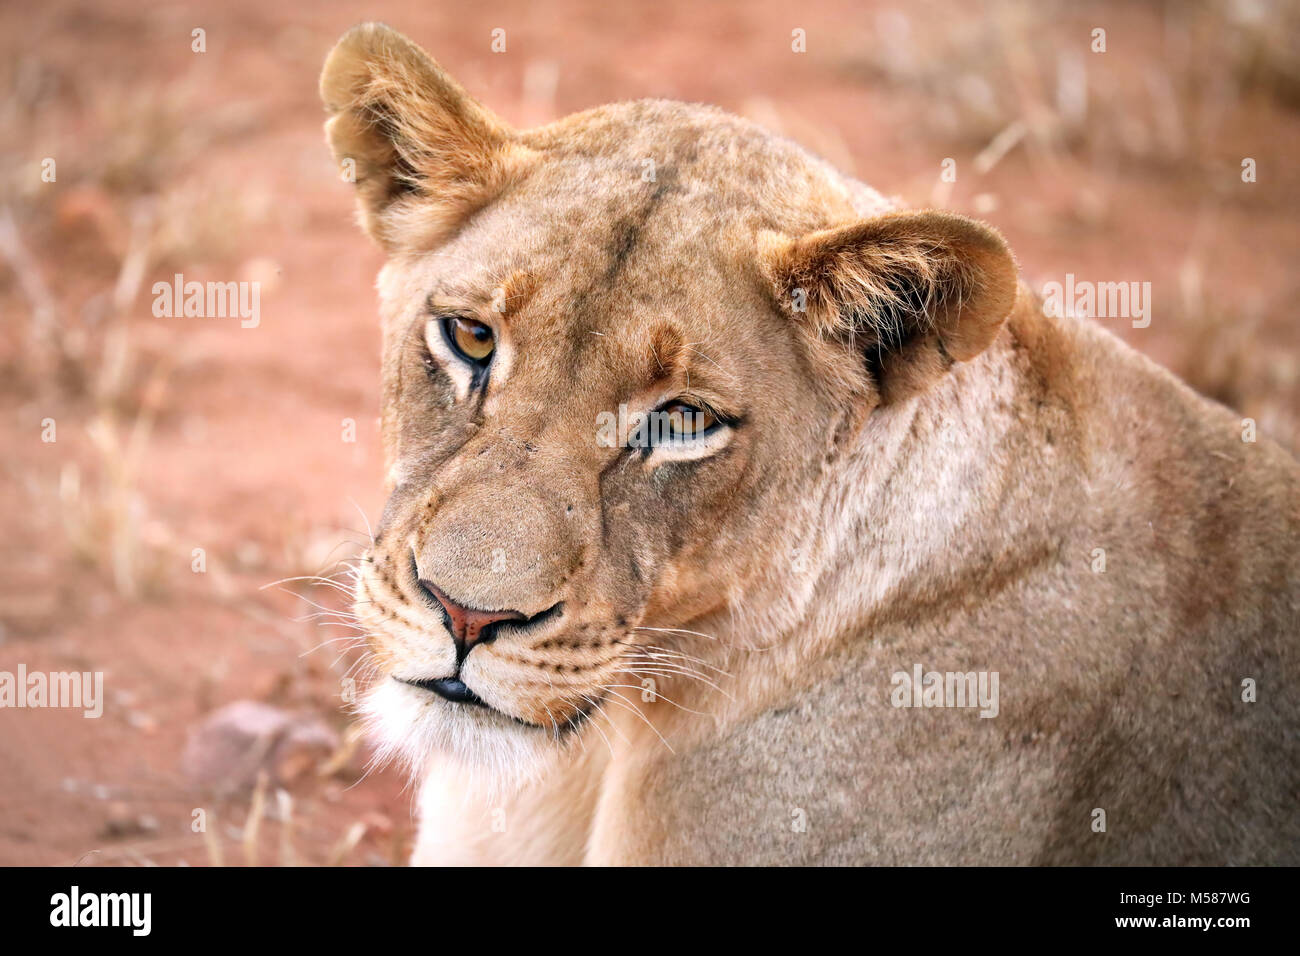 Lioness, Kruger NP, South Africa Stock Photo